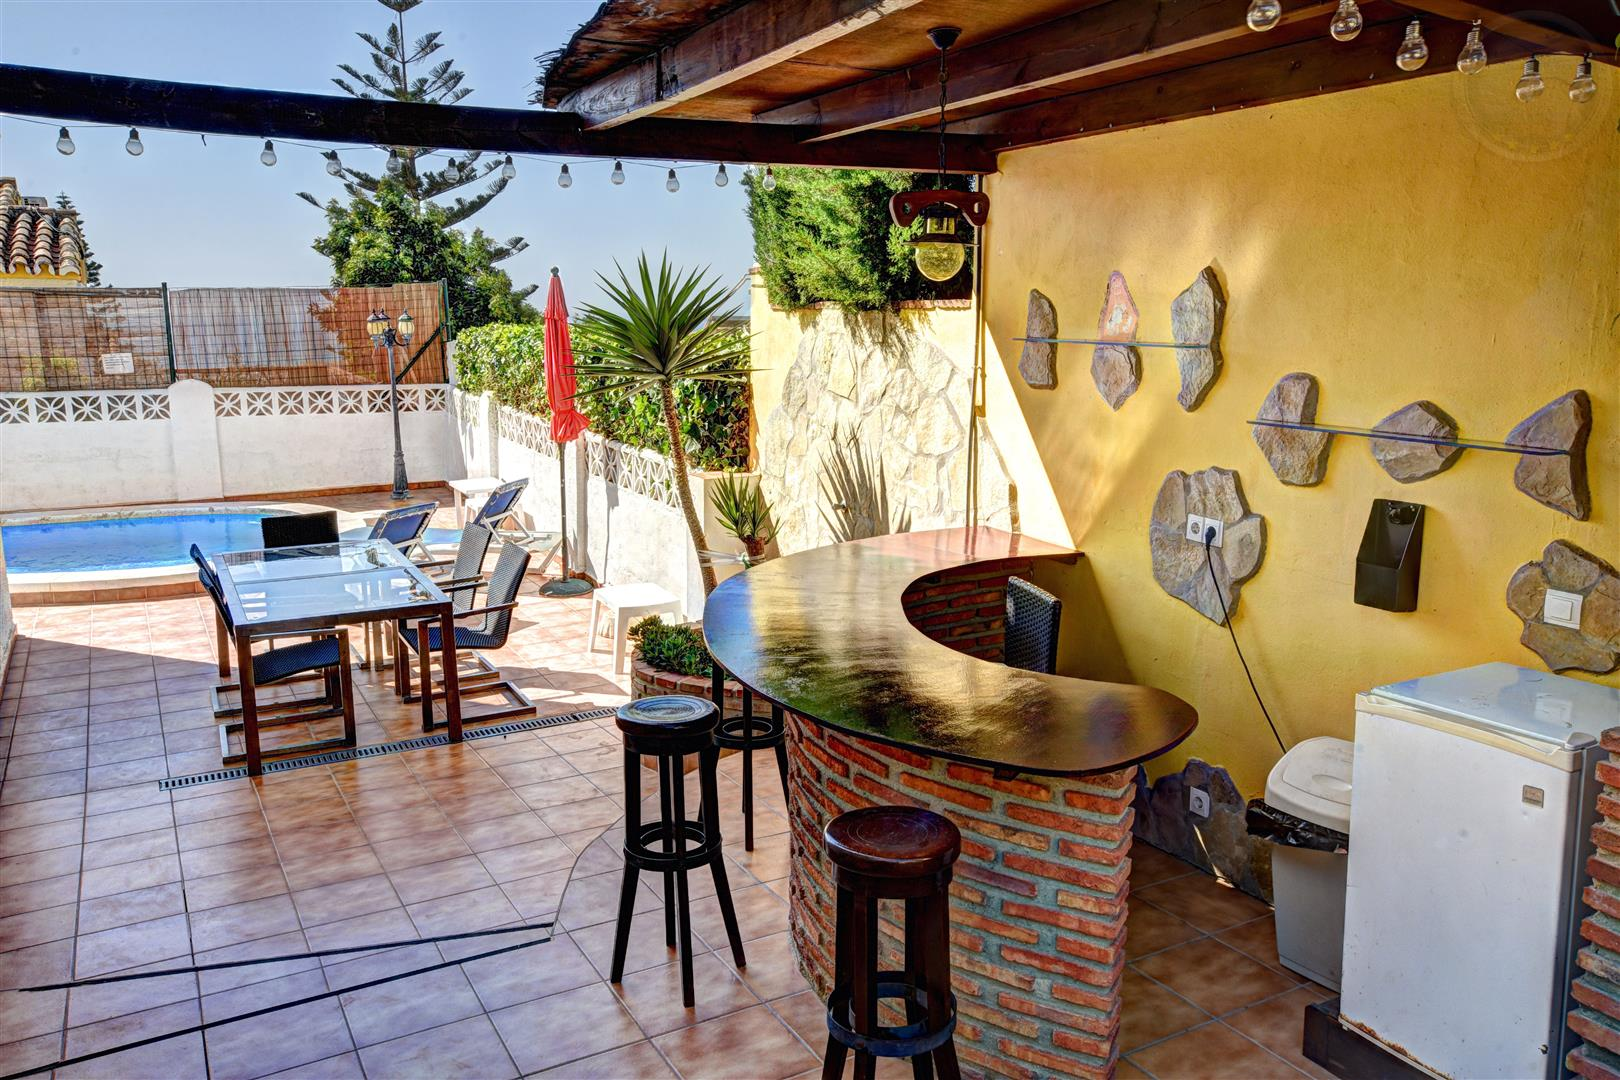 Villa for sale in Arroyo de la Miel 4